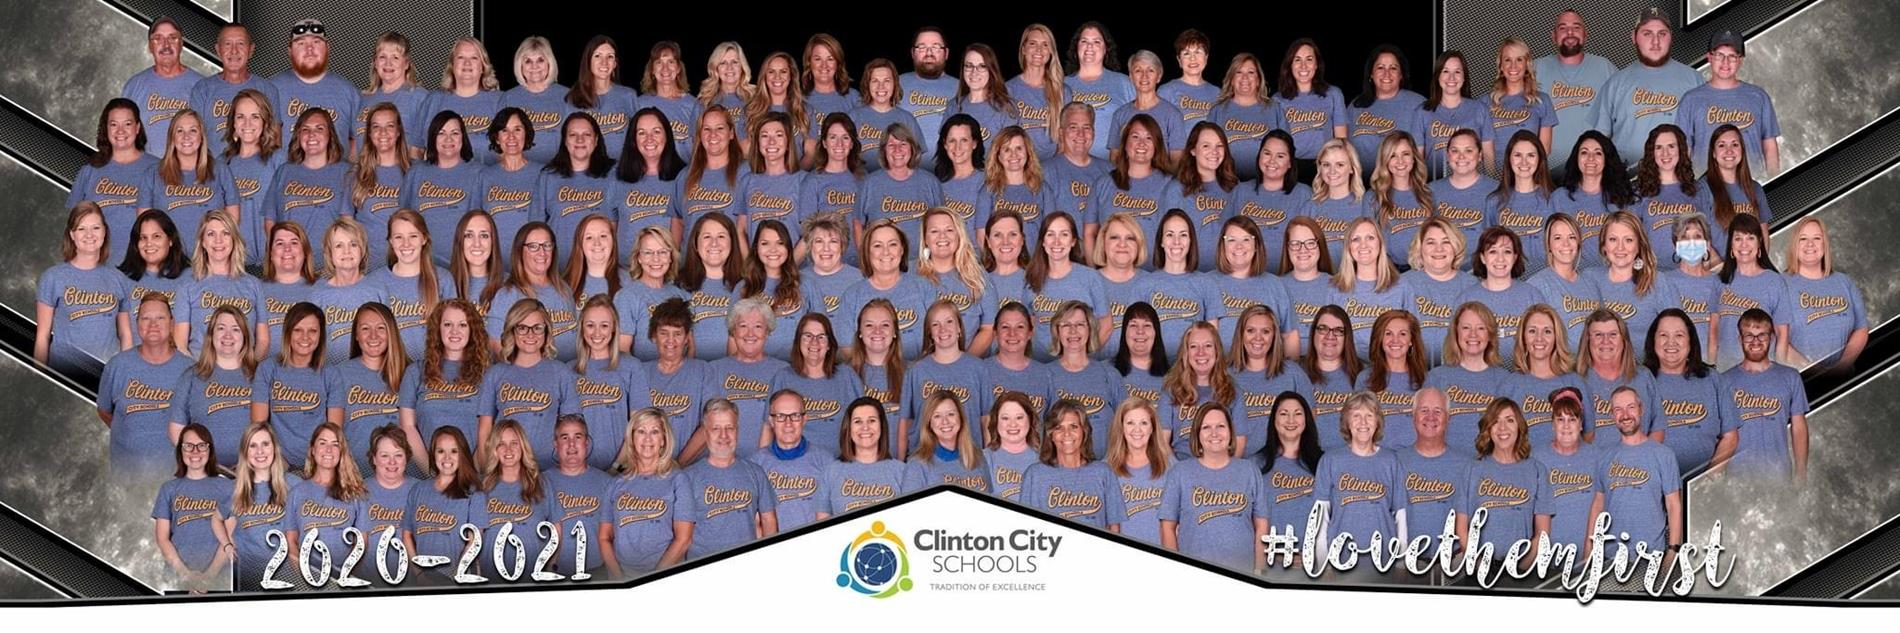 Clinton City Schools Staff group photo